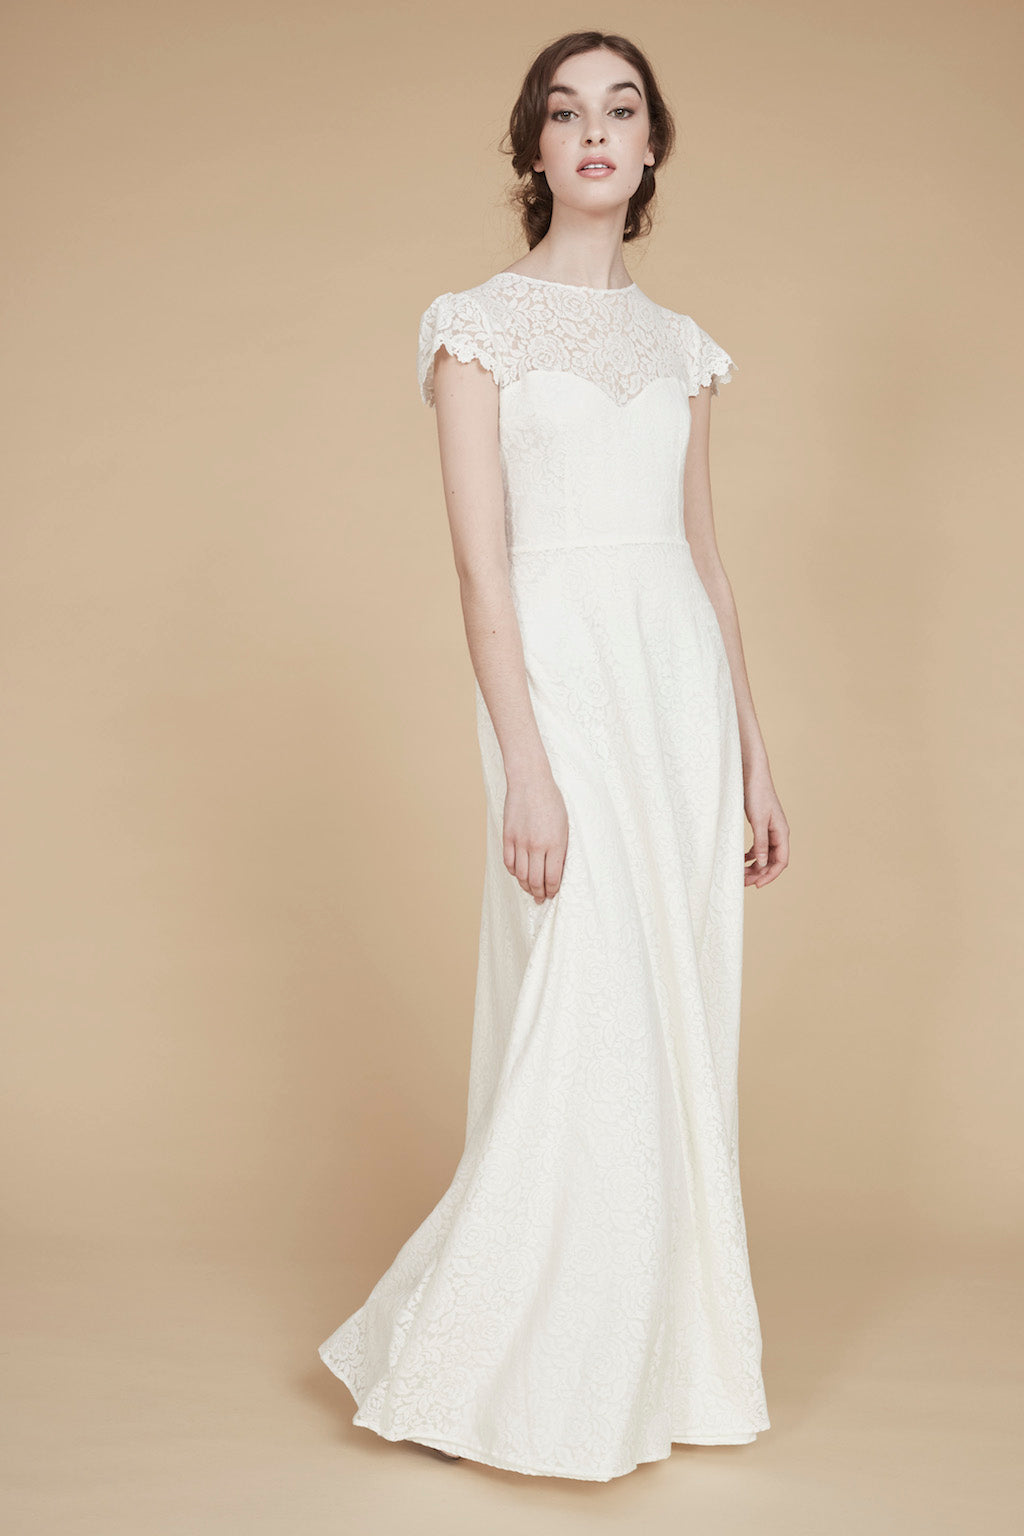 C'est le Temps de L'Amour Wedding Gown